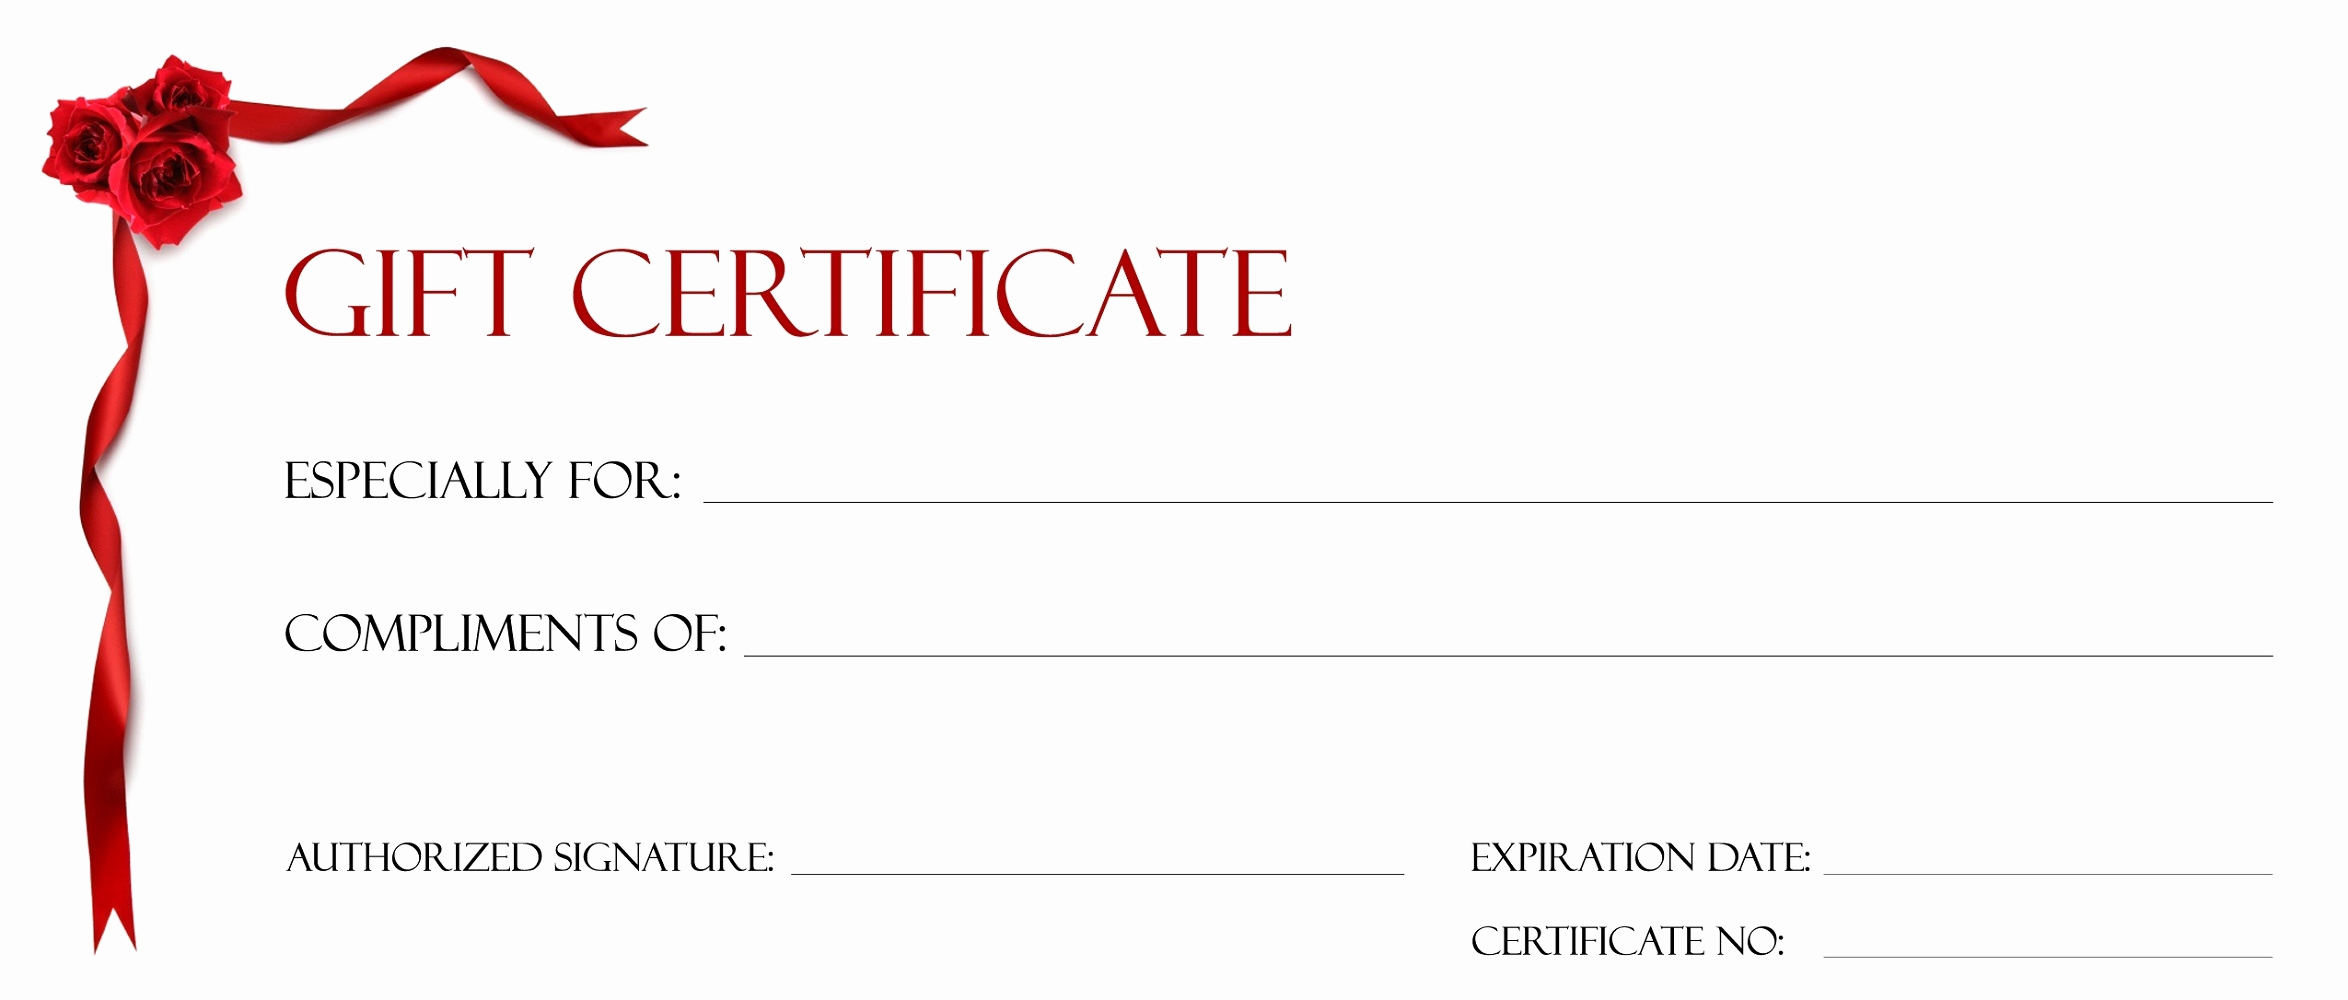 Custom Gift Certificate Template Fresh Personalized Gift Certificates